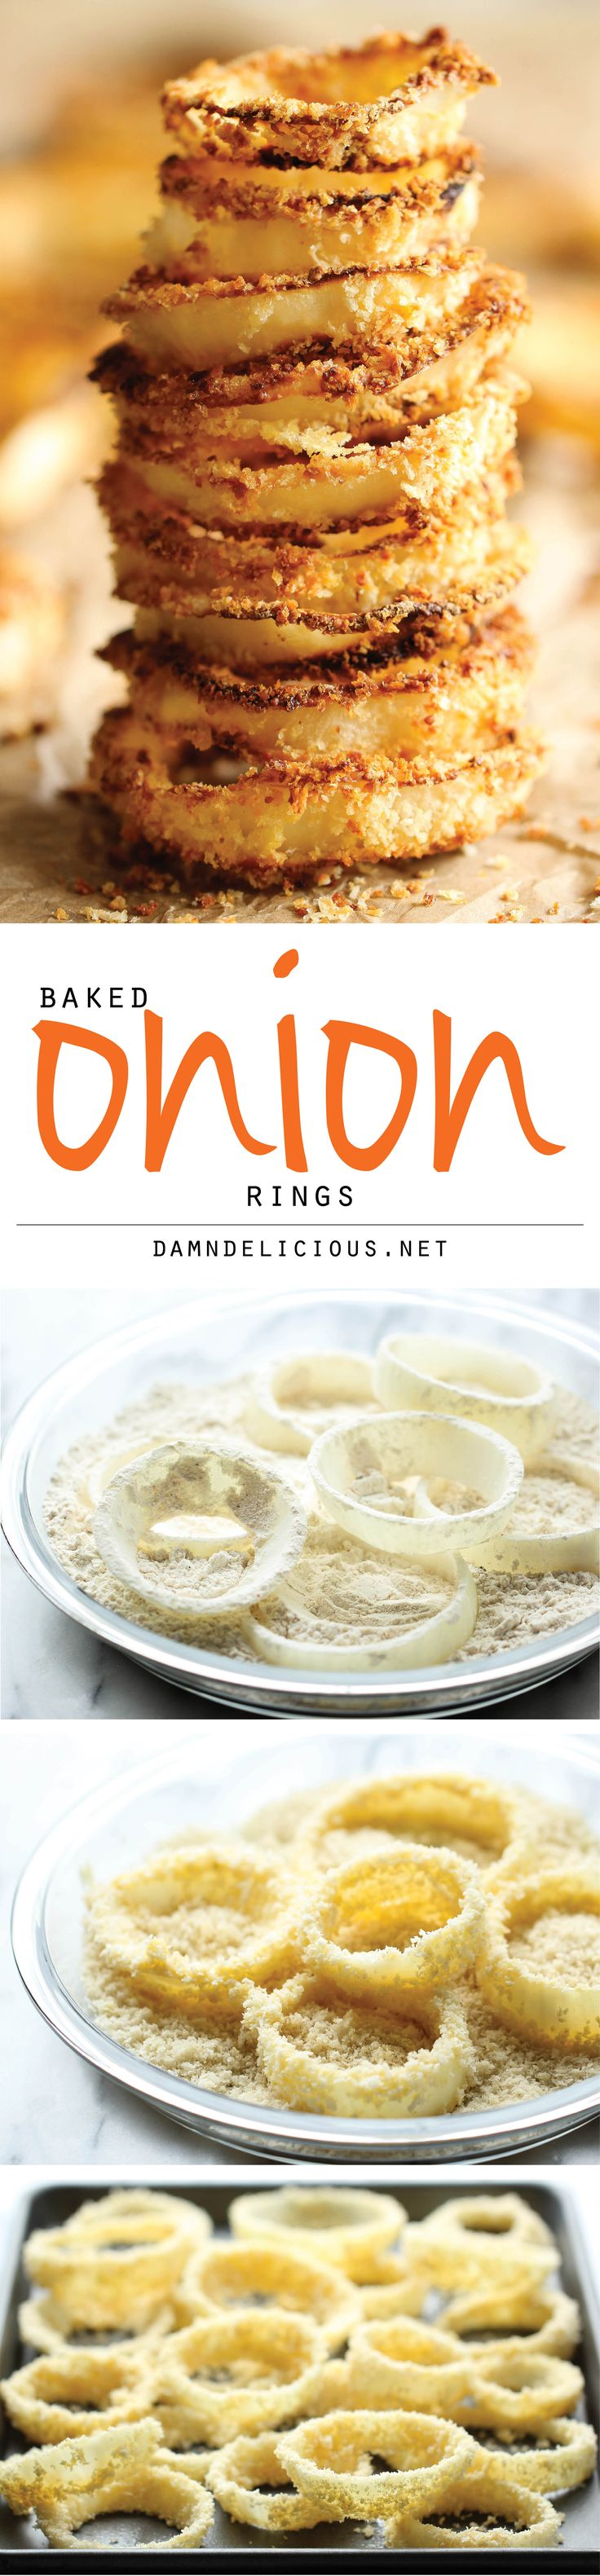 Oven Baked Onion Rings - No need to deal with hot oil - these onion rings are easily baked to crisp-perfection right in the oven!